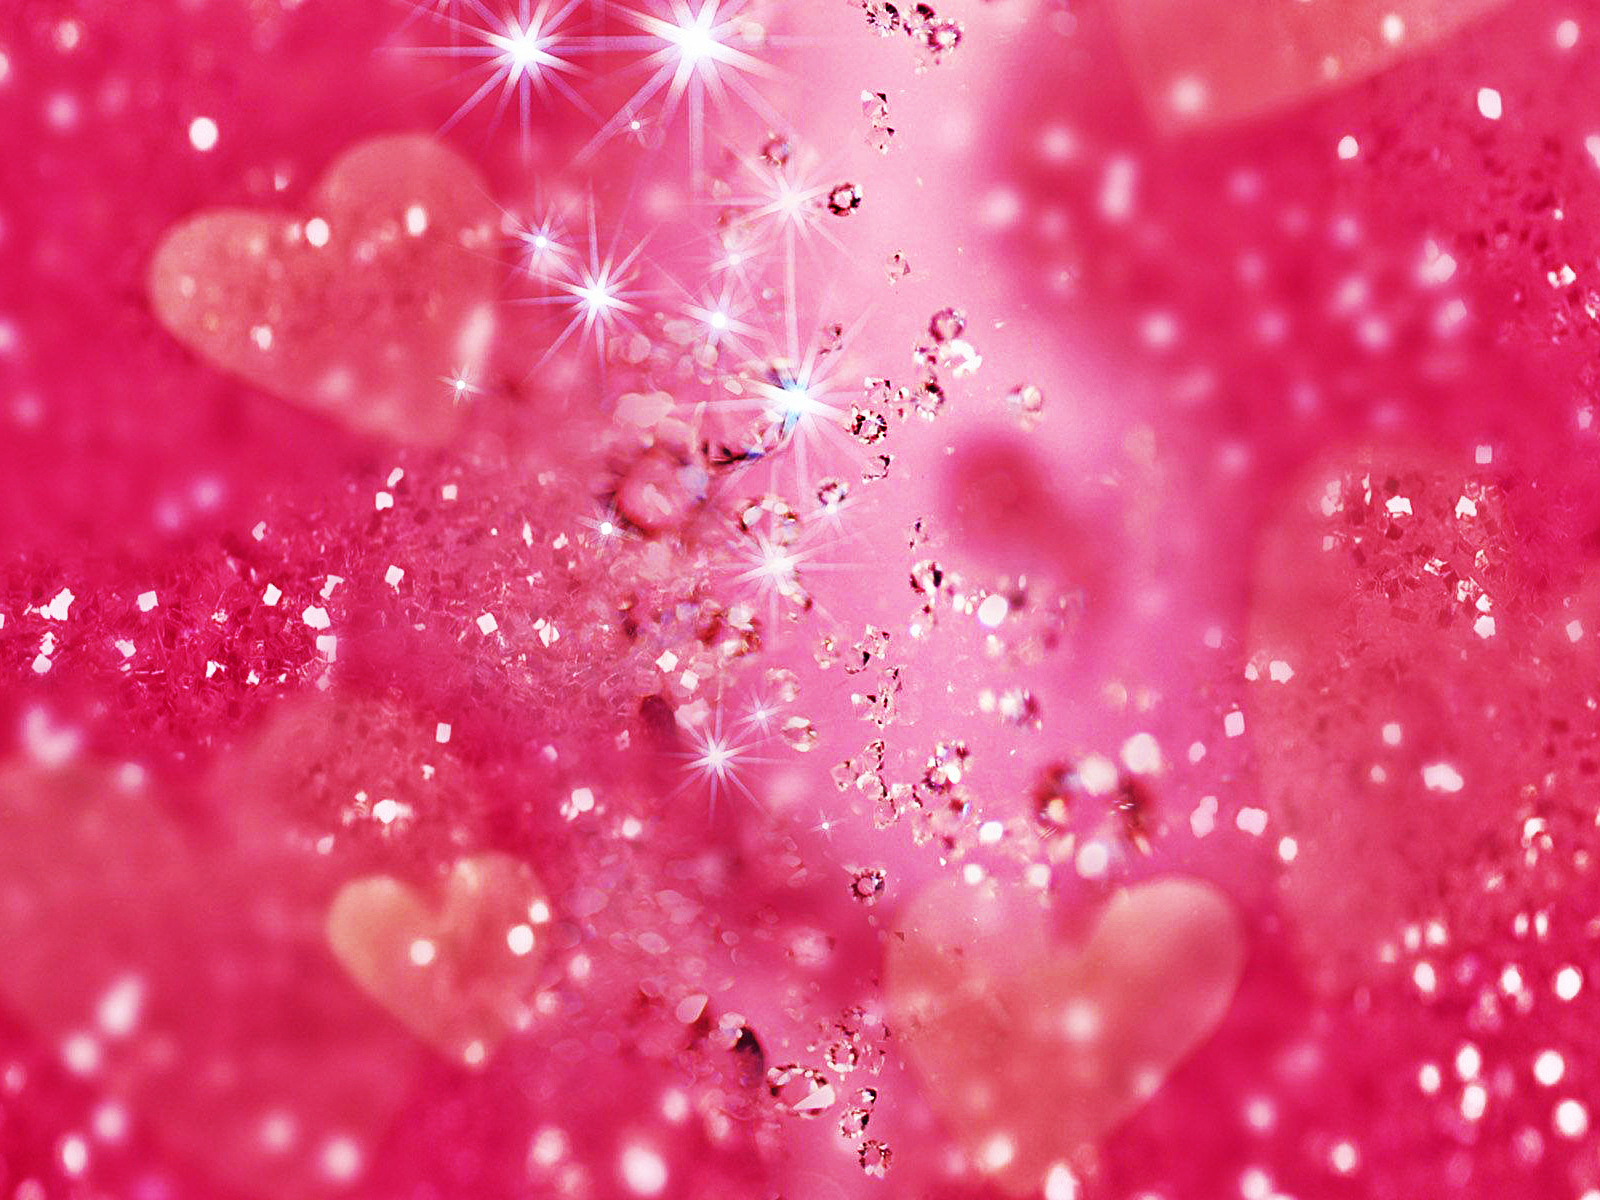 Best 3d Live Wallpaper For Pc Download Pink Princess Wallpaper Gallery